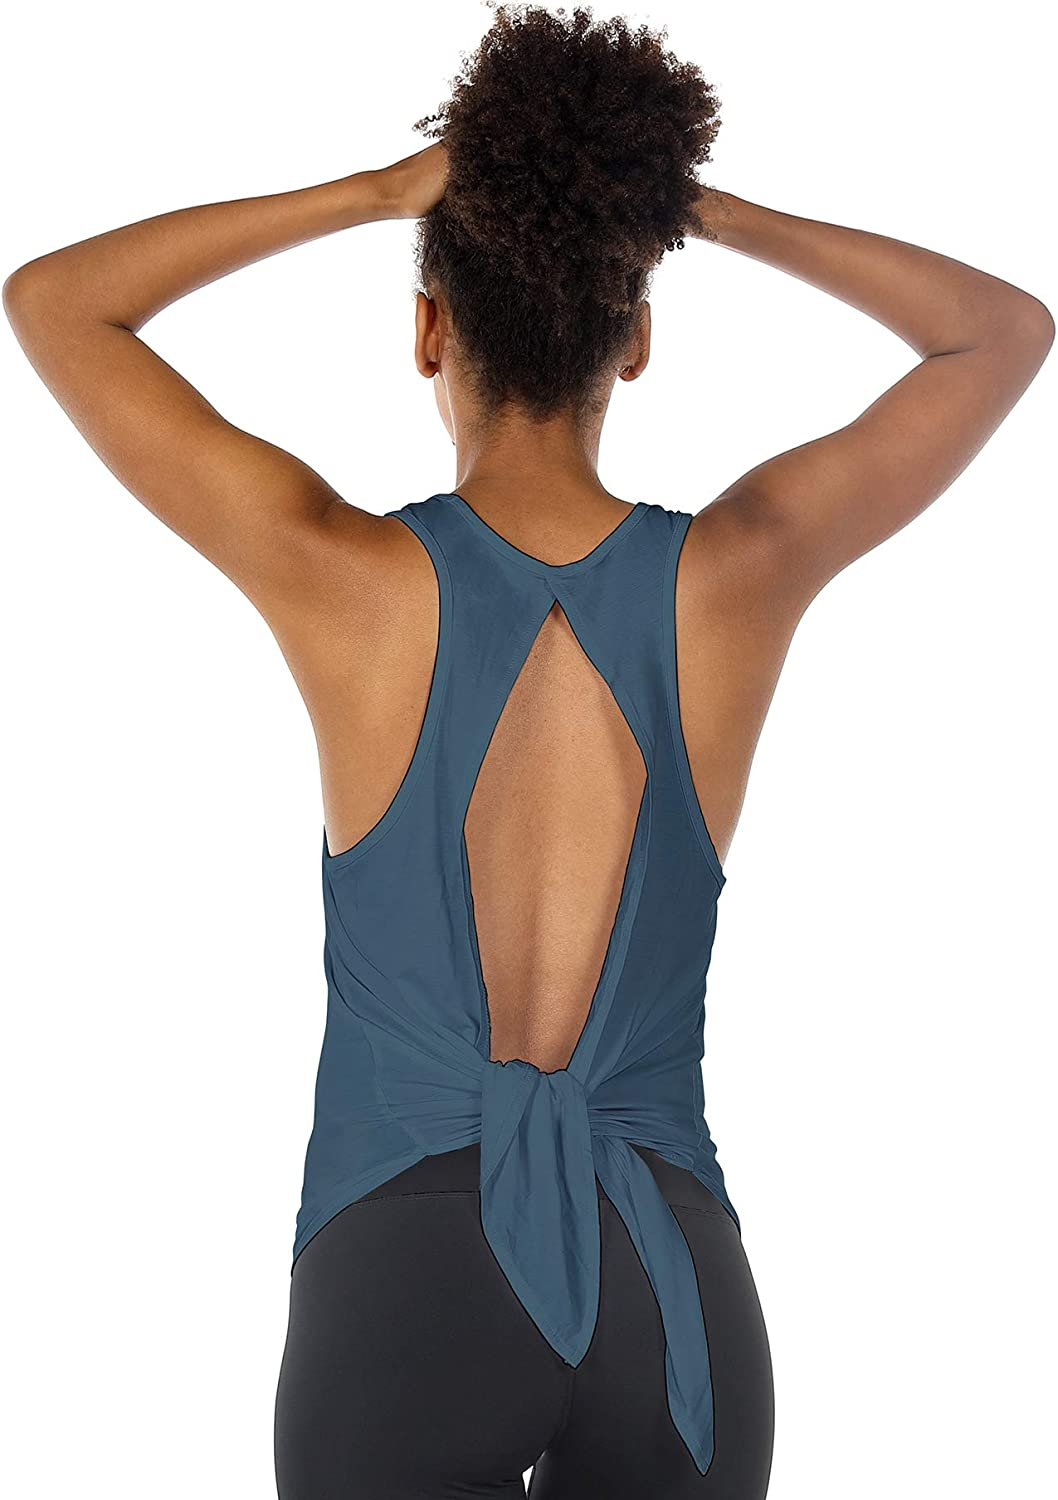 icyzone Limited time sale Open Back Workout Tops Financial sales sale for Women Athletic S - Activewear